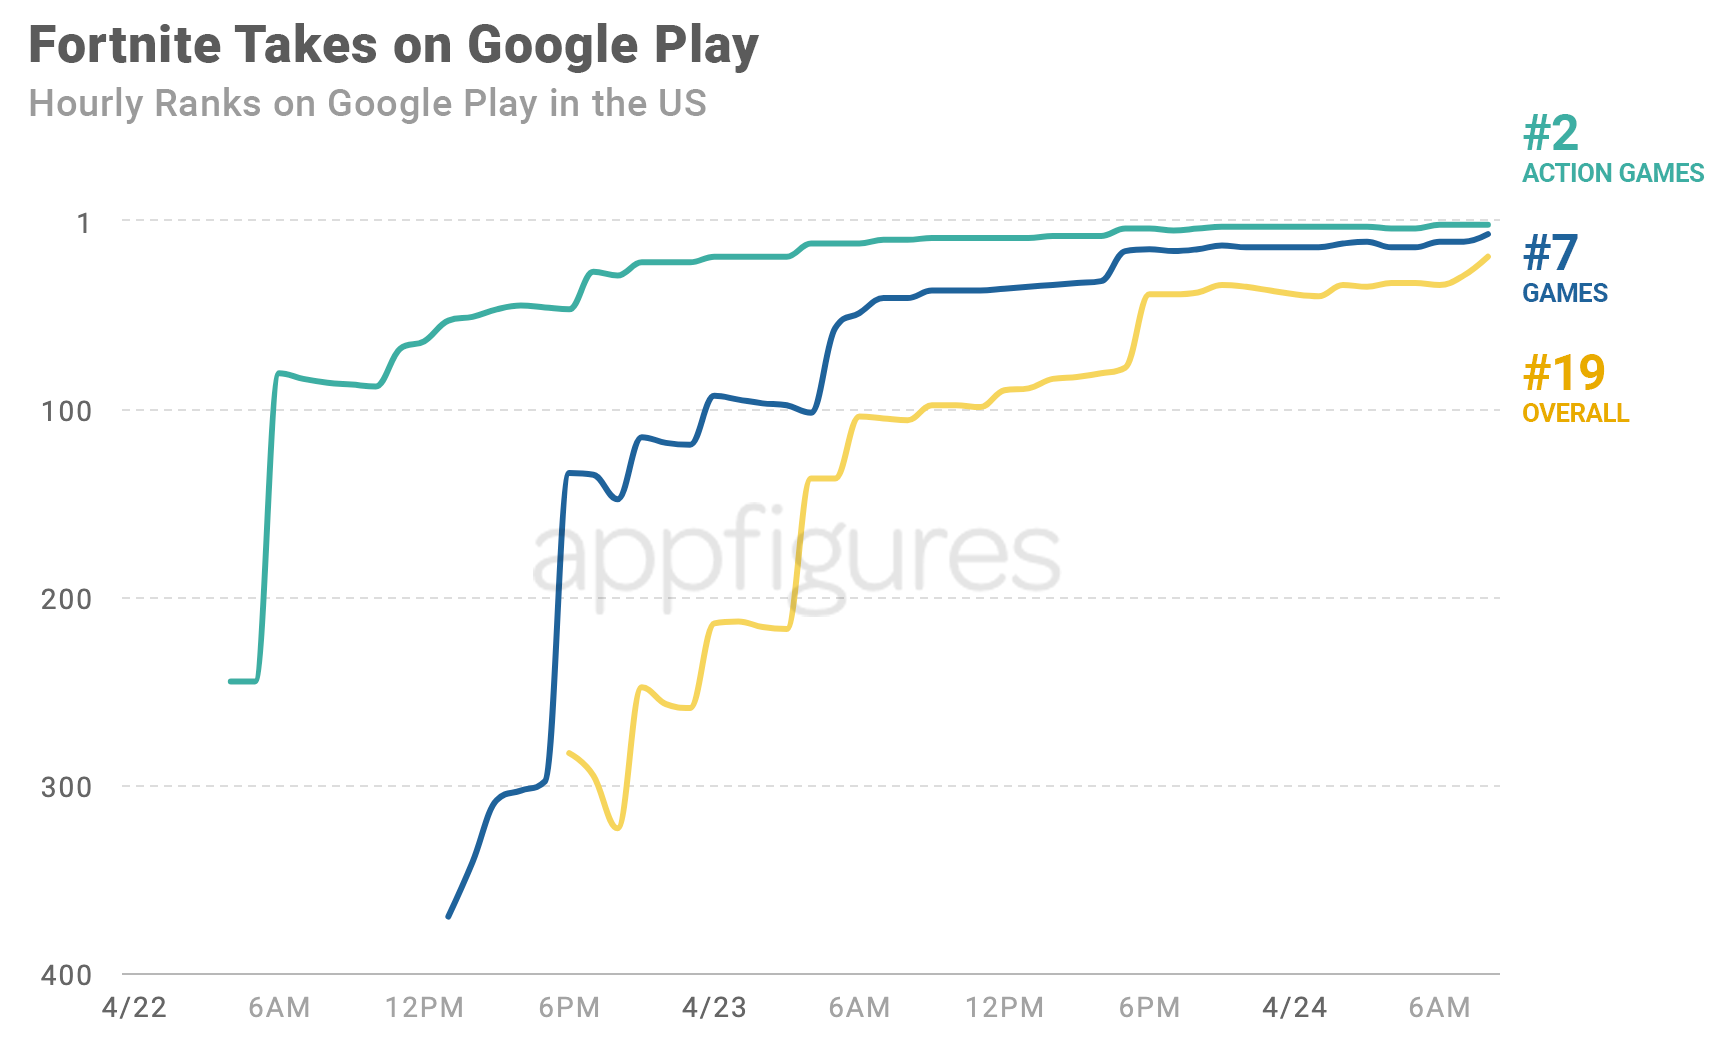 Fortnite on Google Play - Hourly ranks